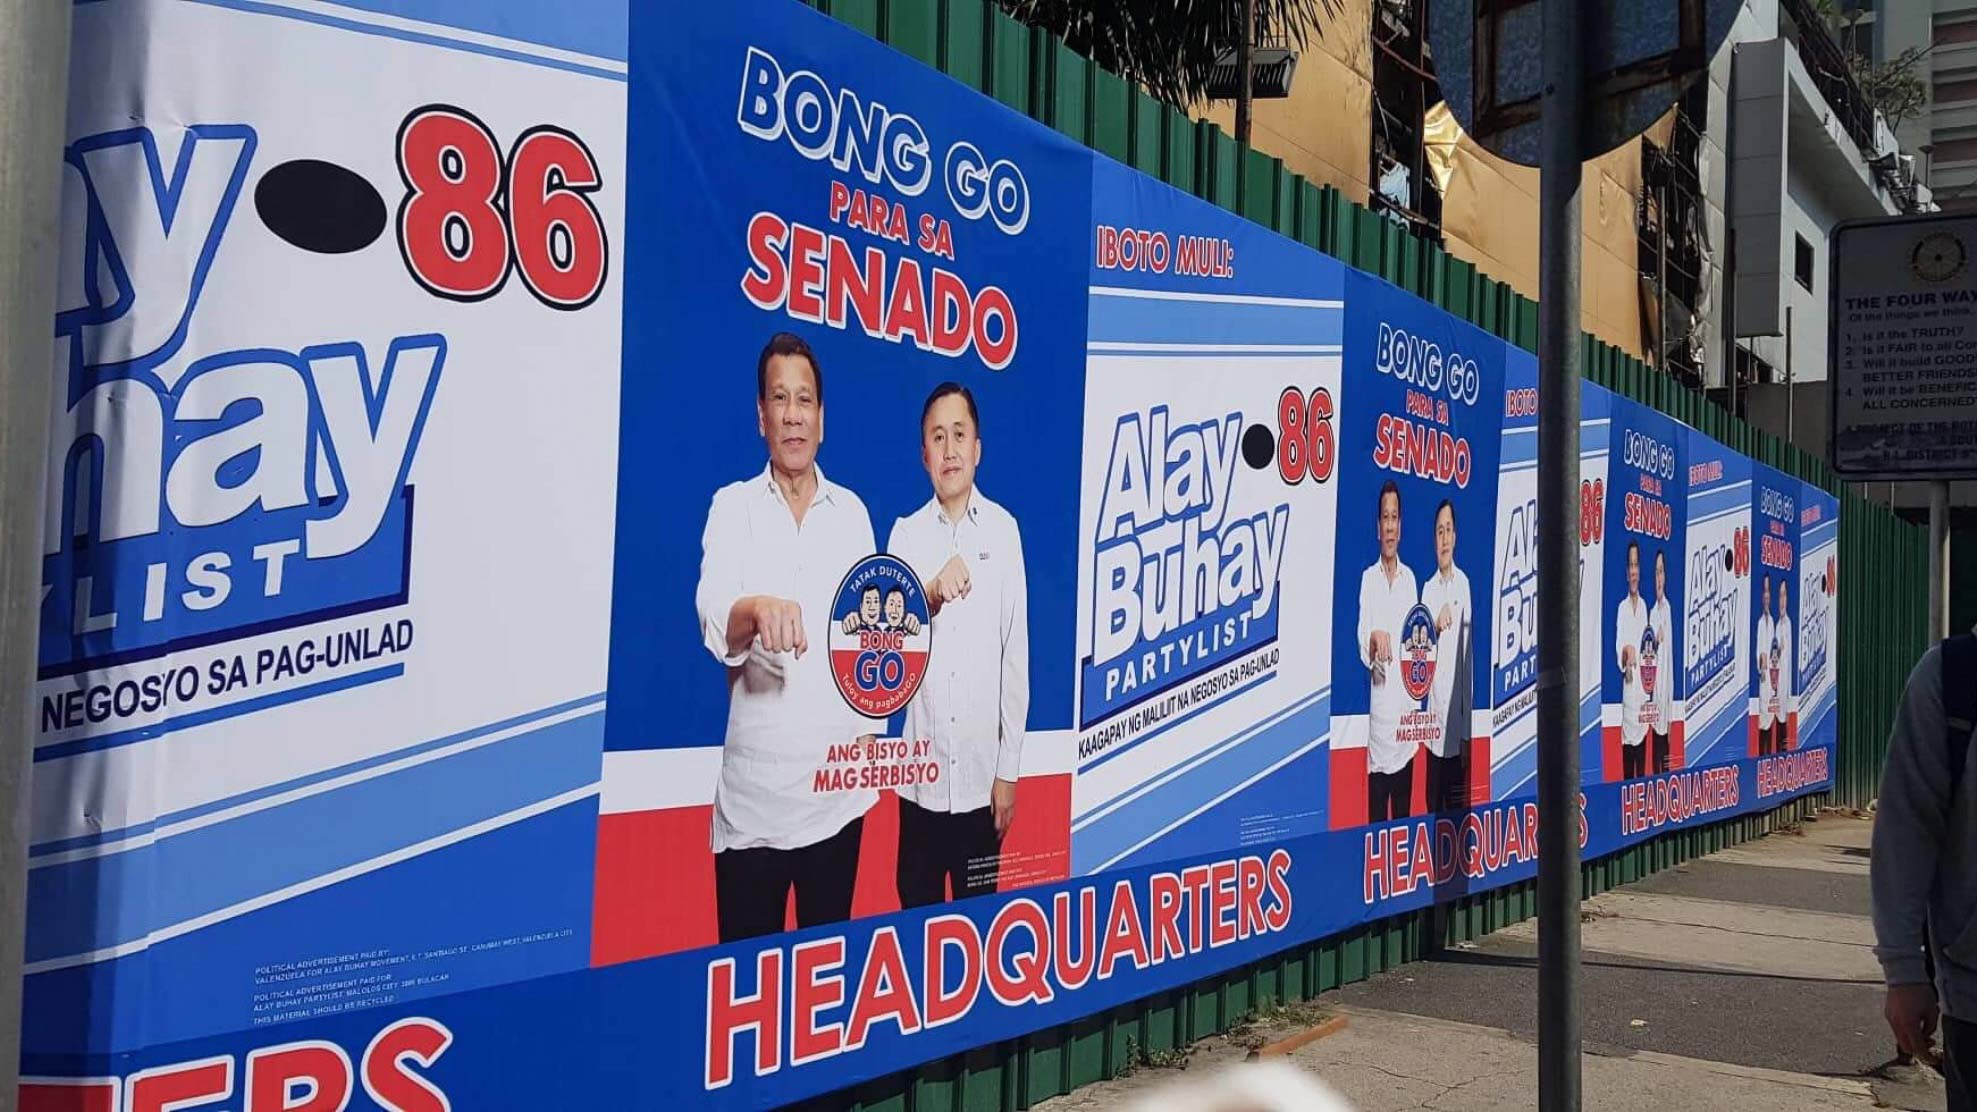 ILLEGAL POSTER. Under Republic Act No. 9006 or the Fair Elections Act, campaign posters should measure no more than 2 feet by 3 feet. Screenshot from Twitter/COMELEC